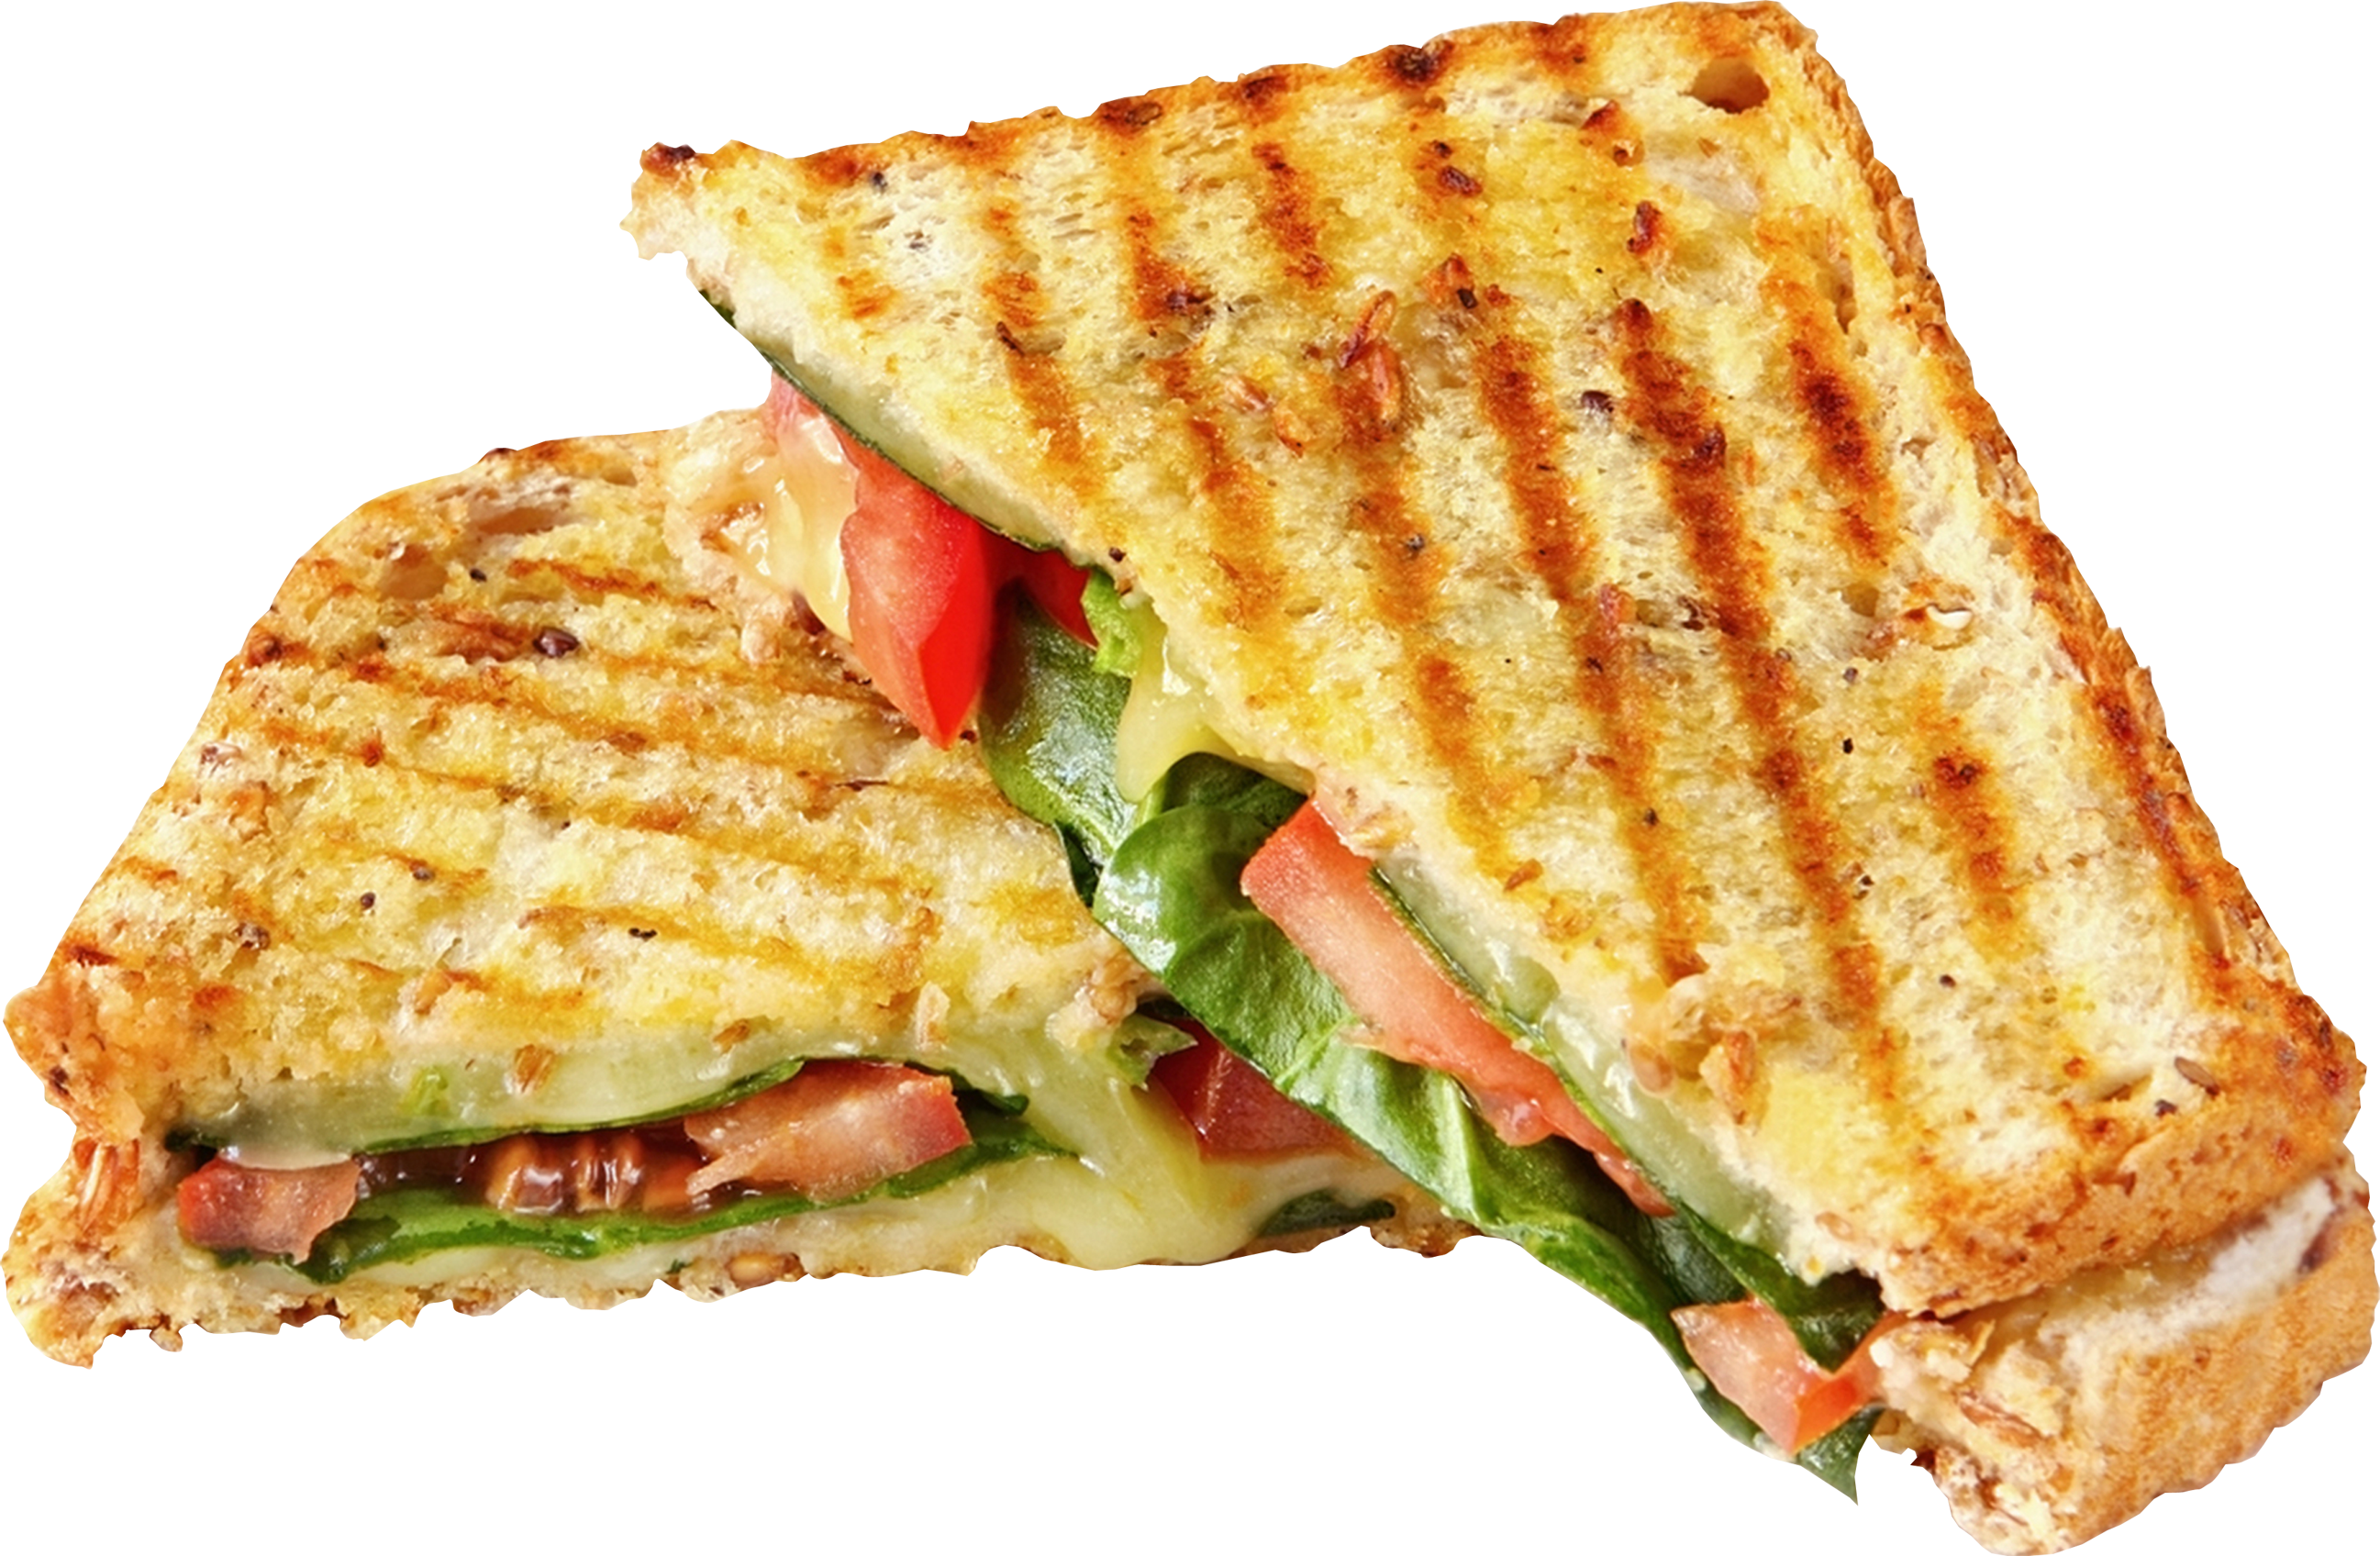 Grilled cheese png. Sandwich hd transparent images